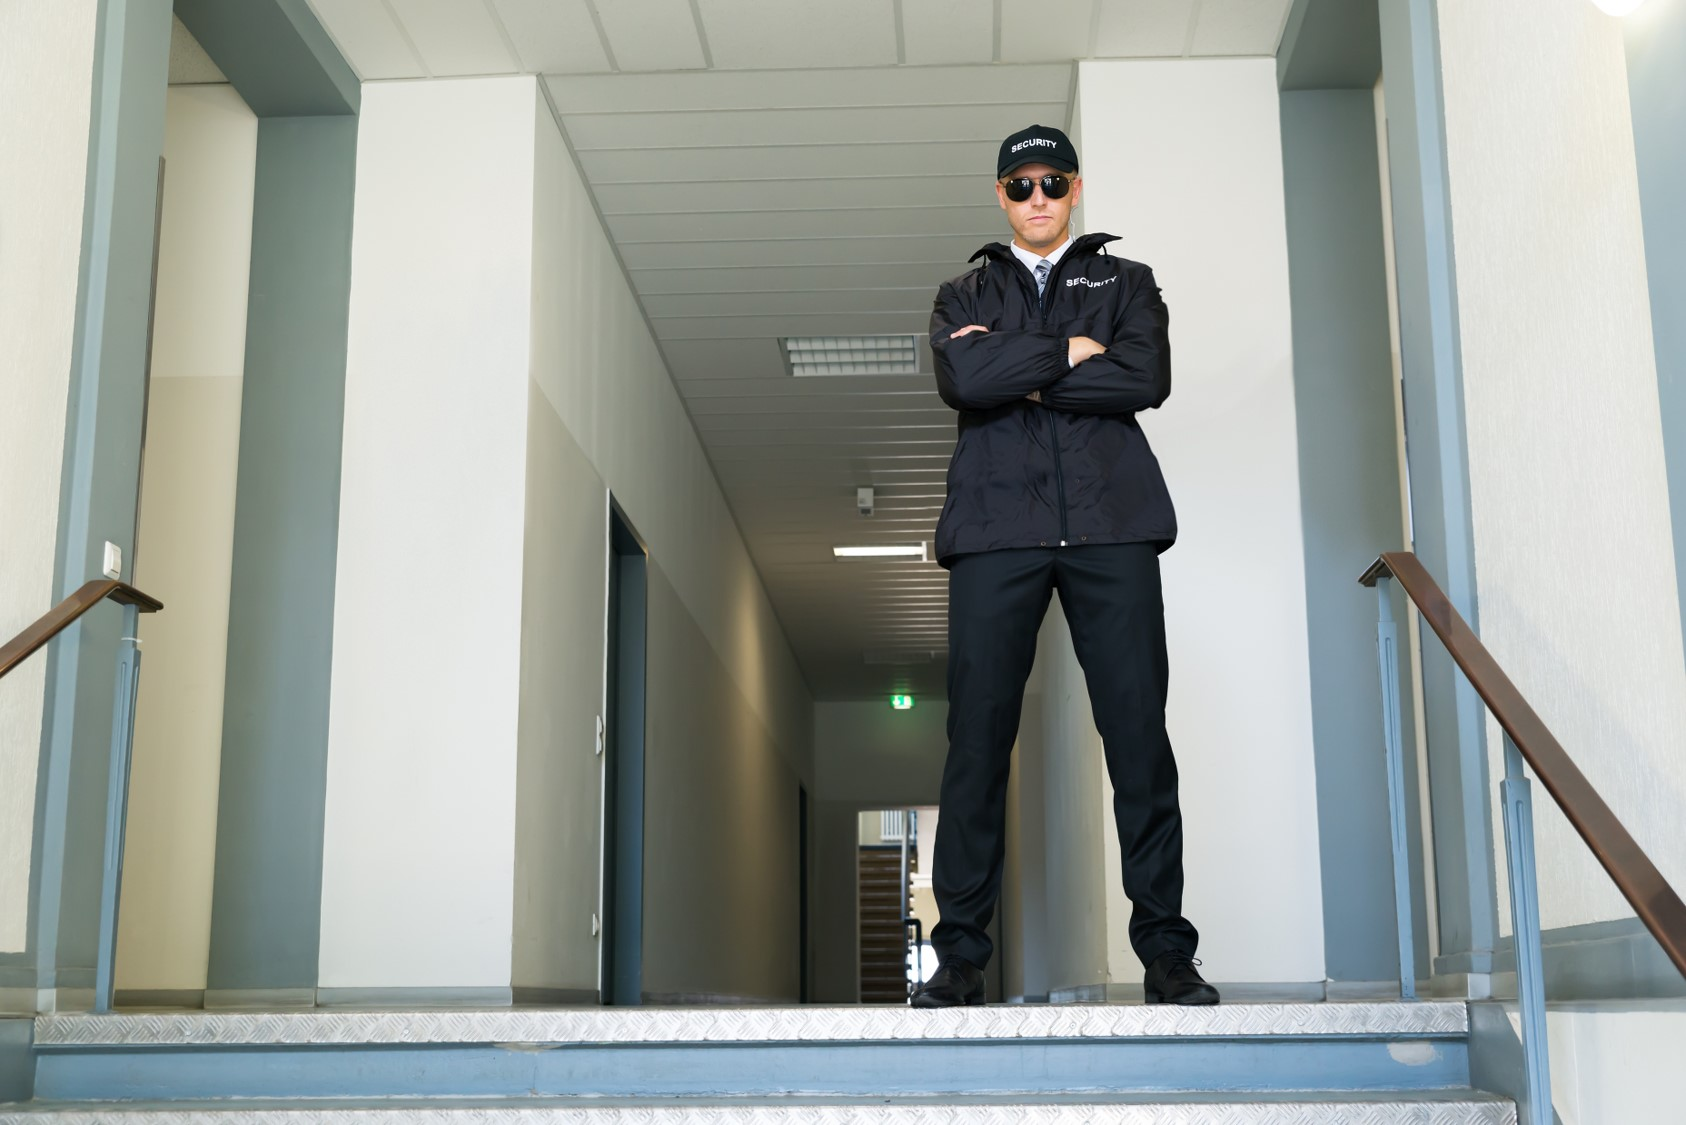 Security guard low res